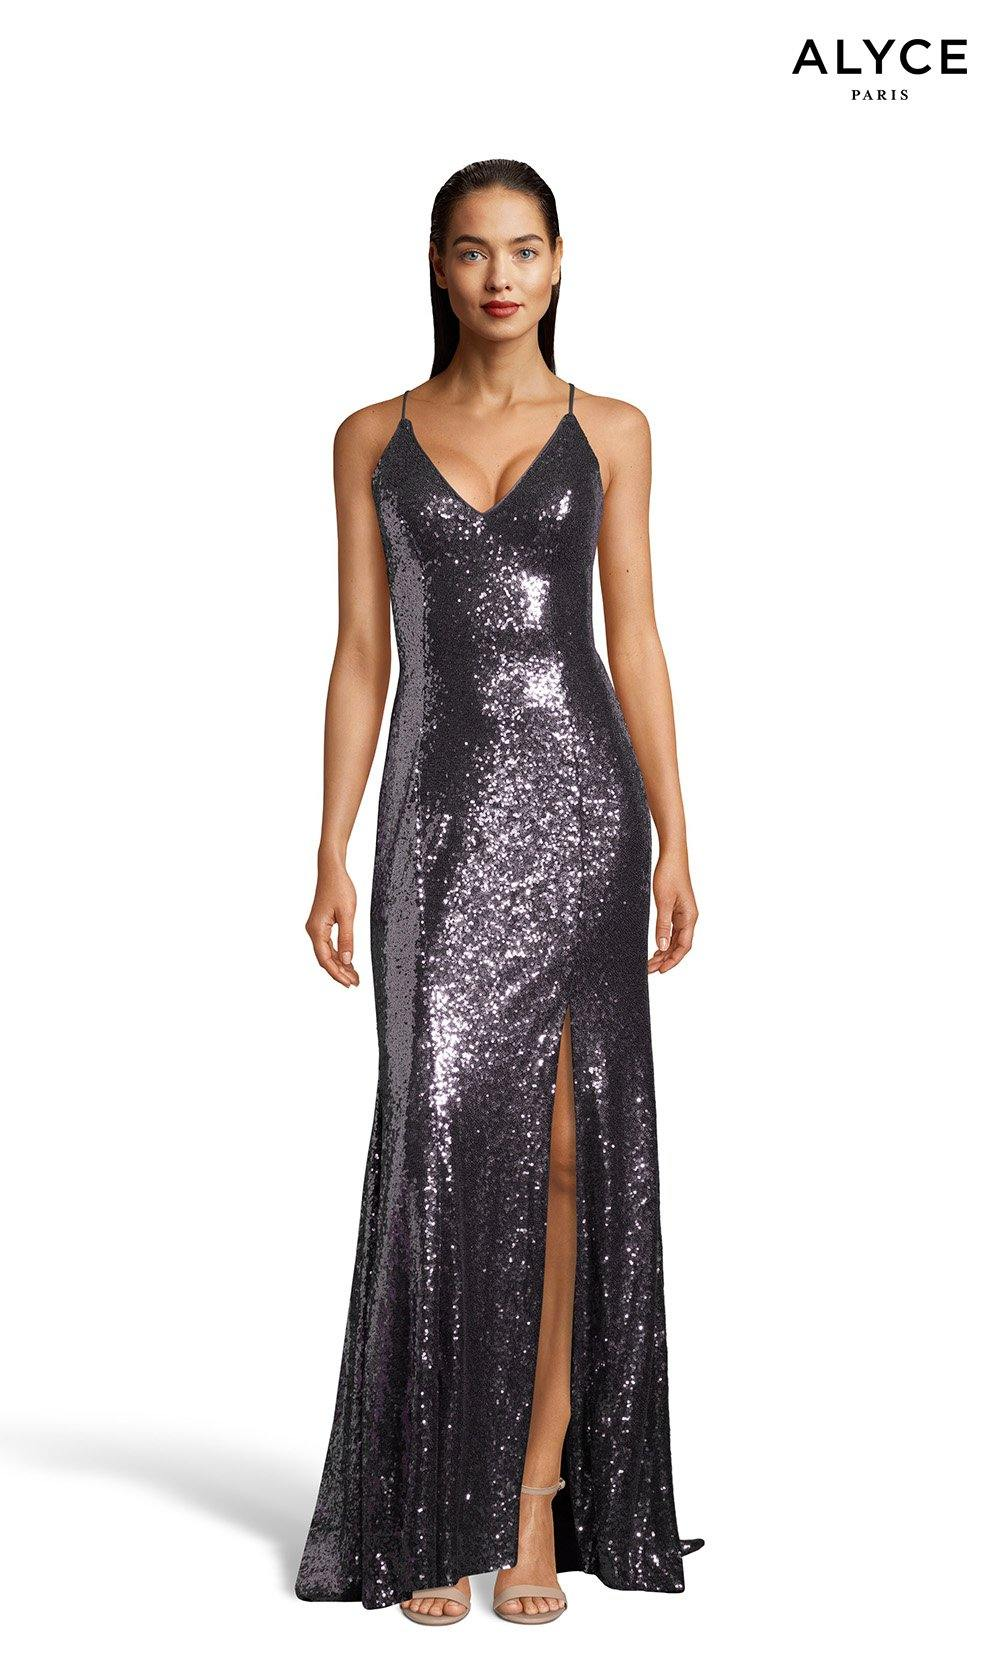 Charcoal sequin prom dress with a V-neckline and a slit